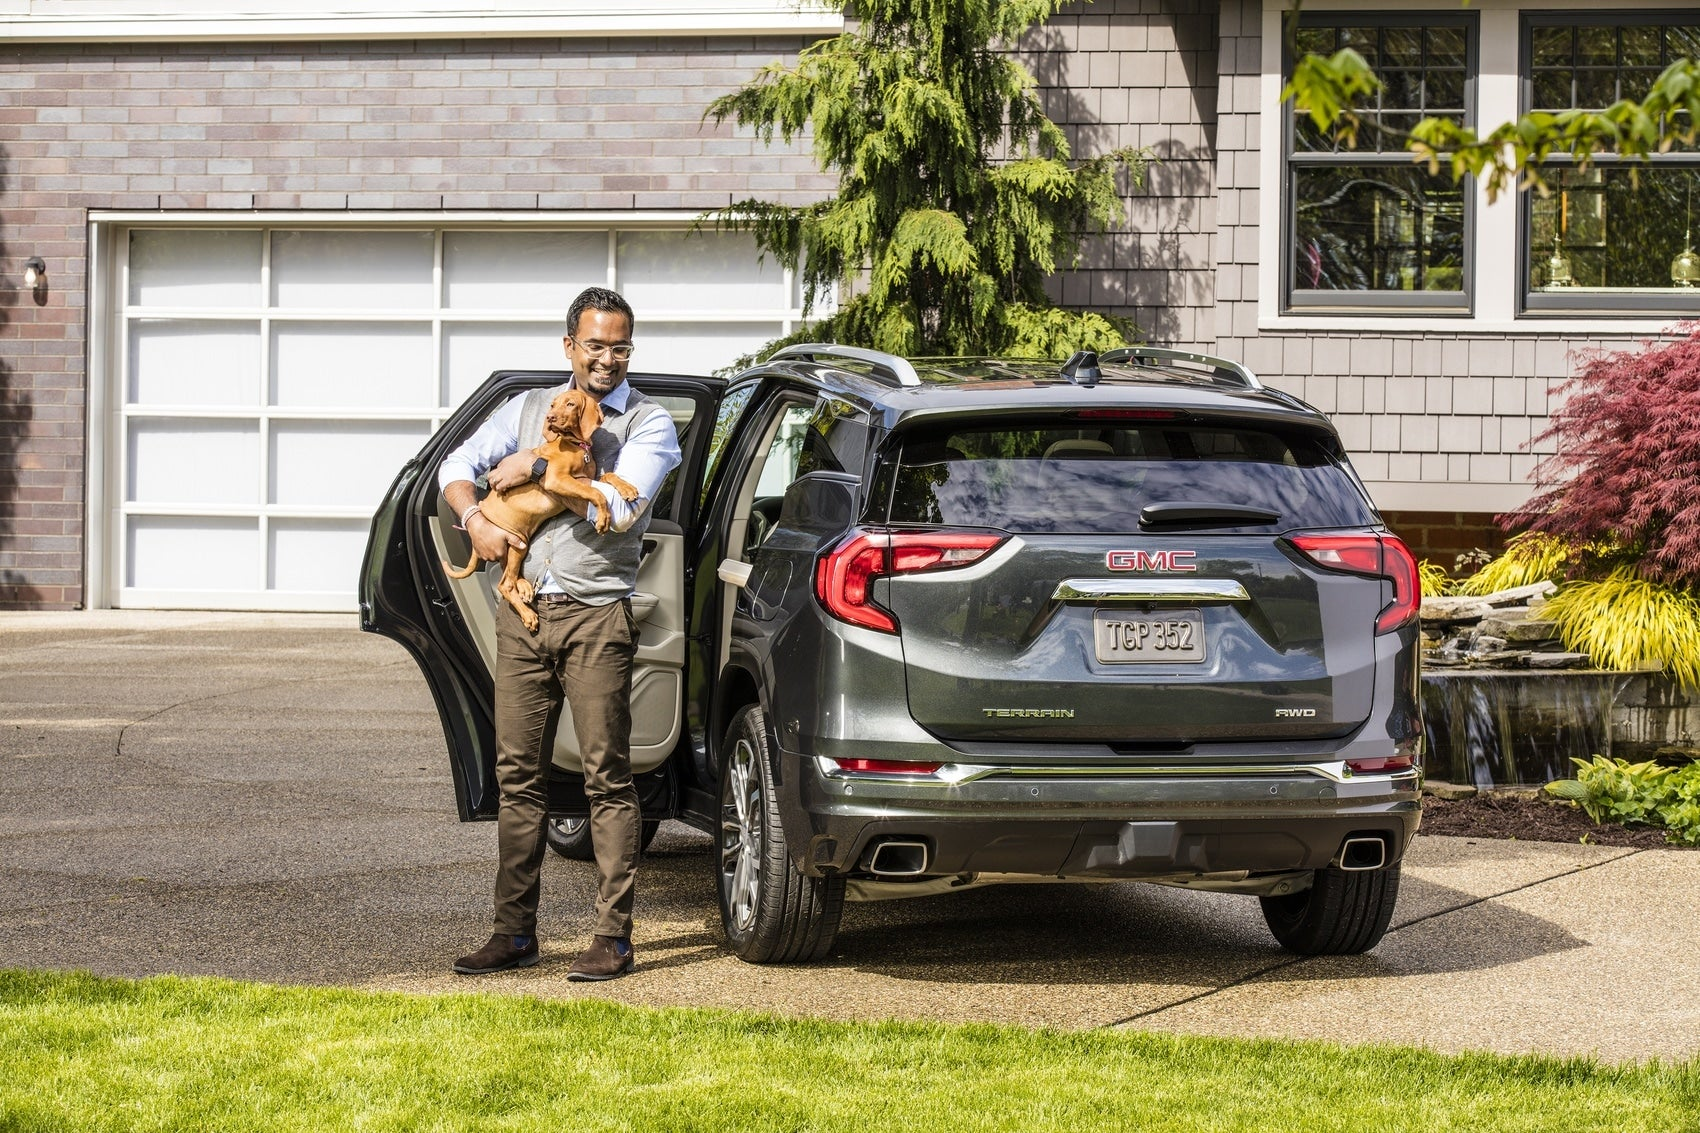 2019 gmc terrain denali review  compelling choice overall